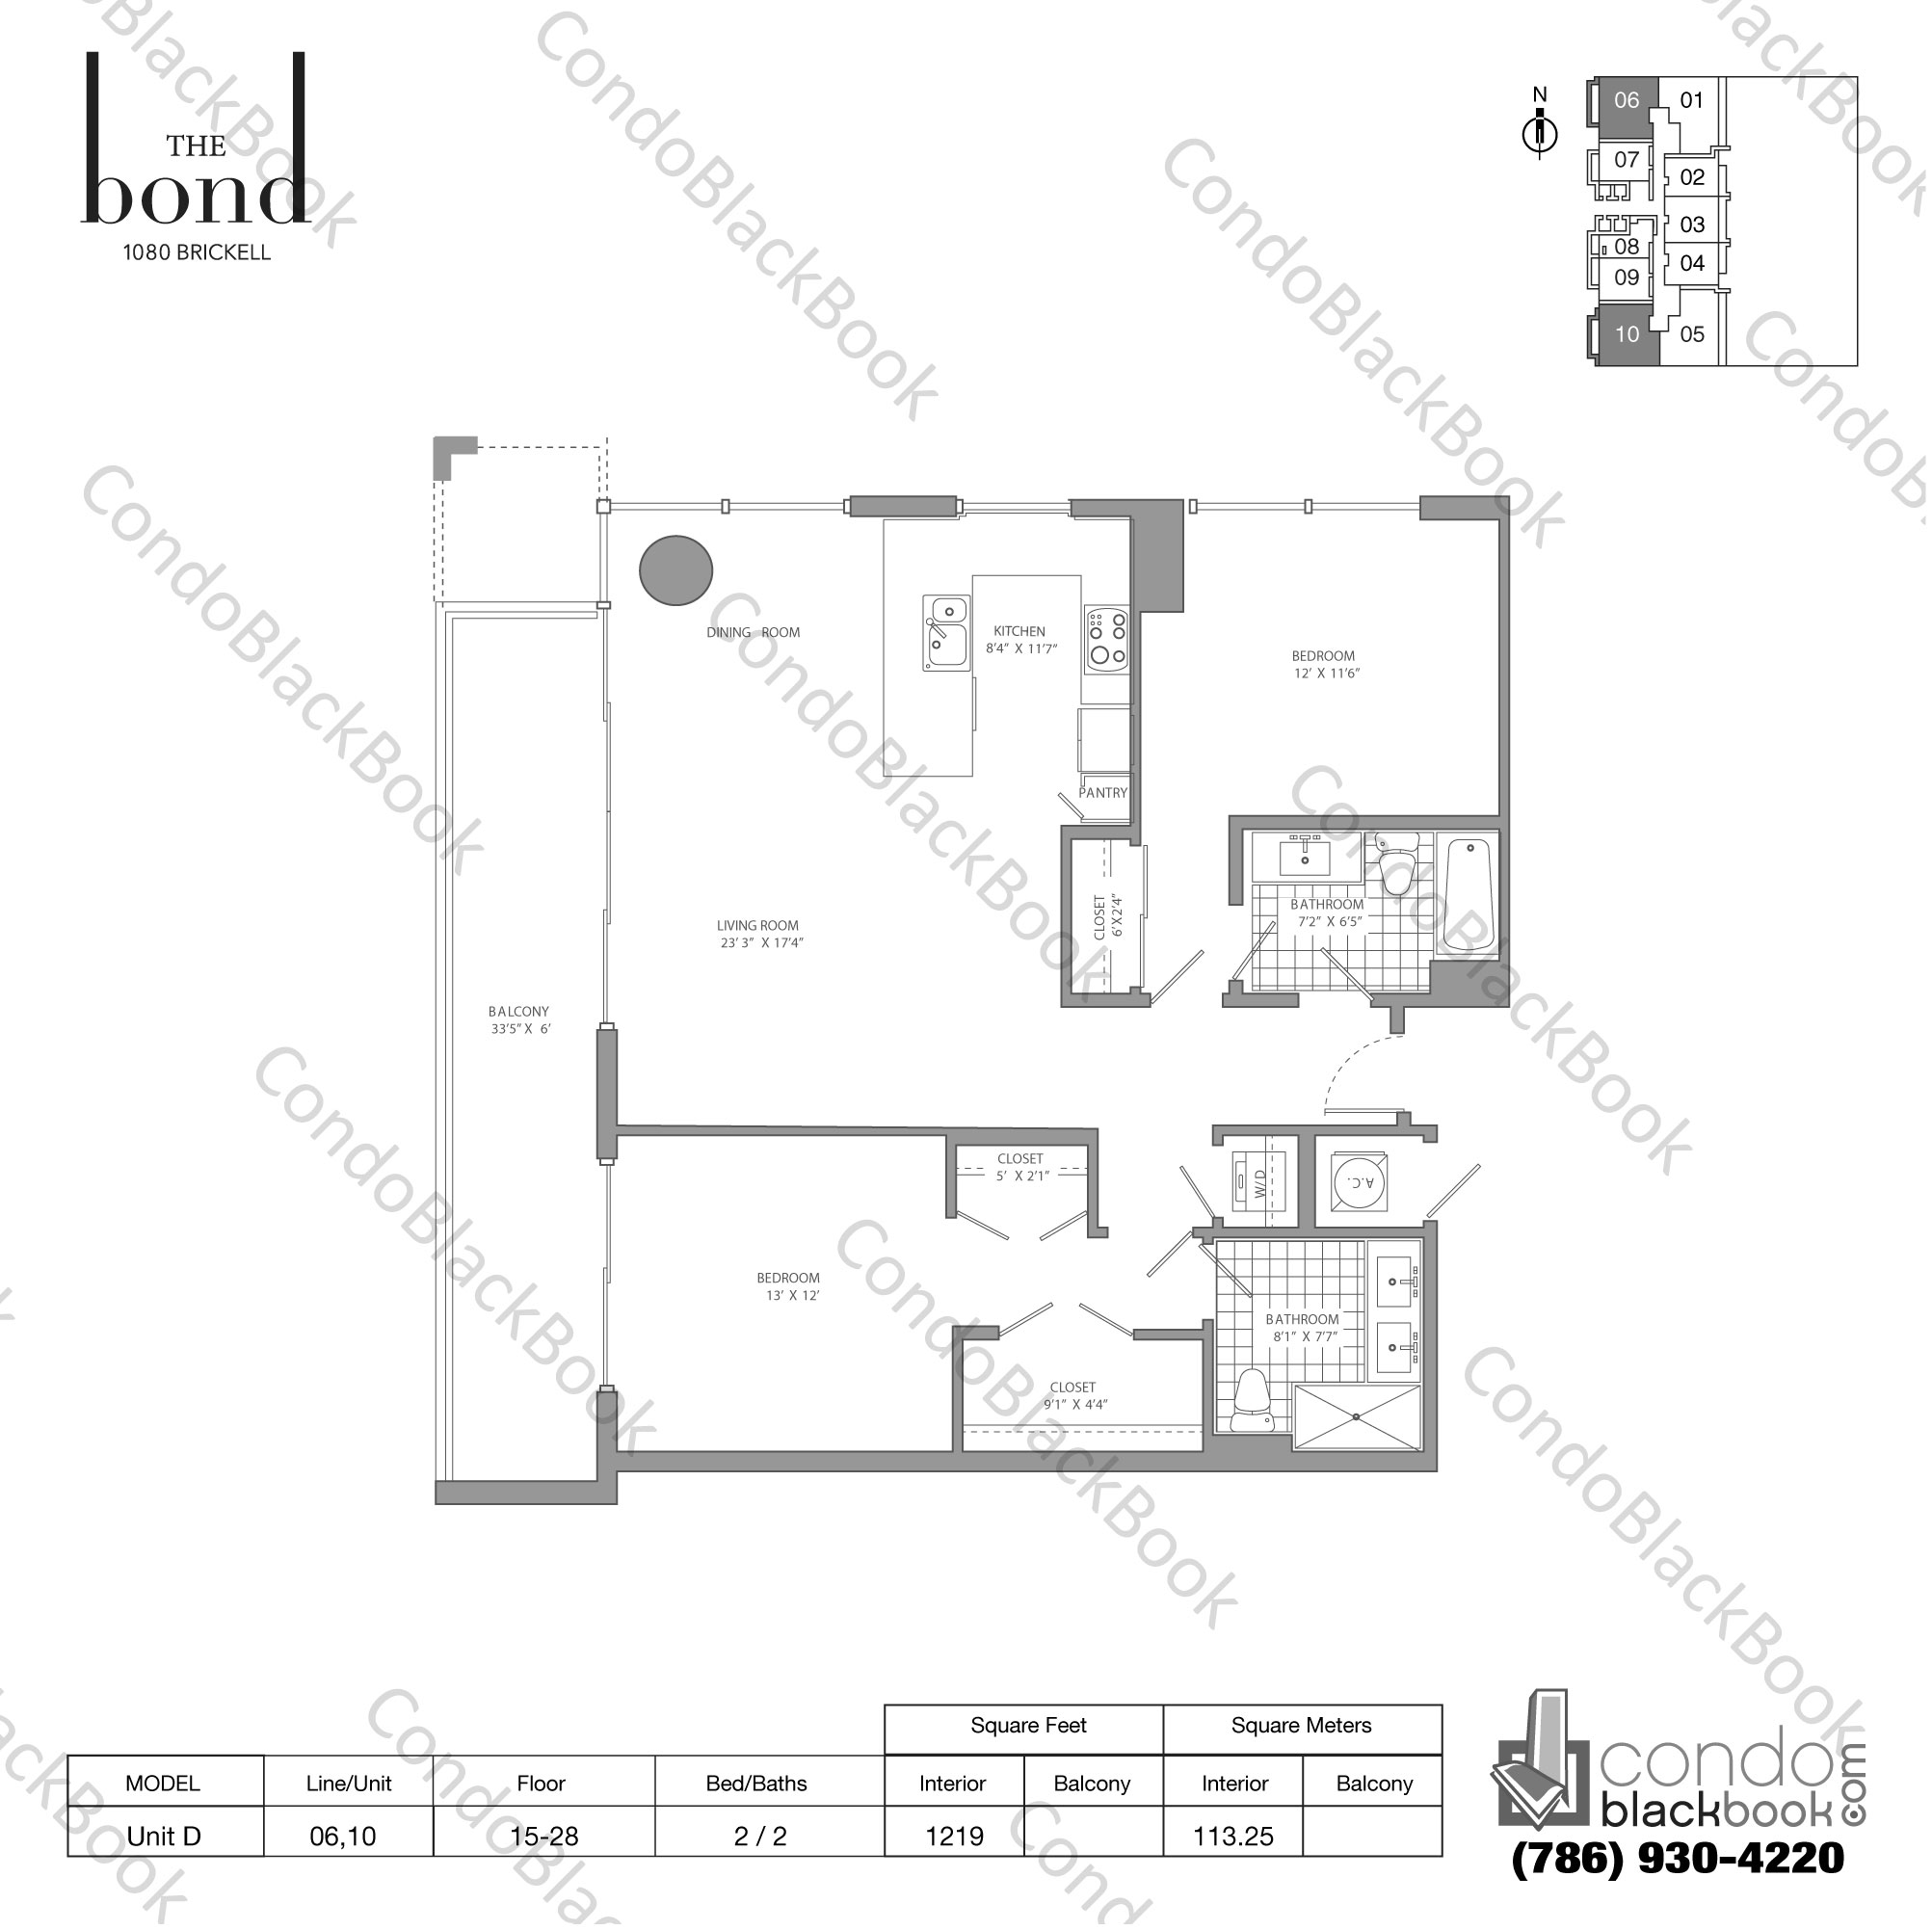 Floor plan for The Bond Brickell Miami, model UNIT D, line -, 2/2 bedrooms, 1,218 sq ft